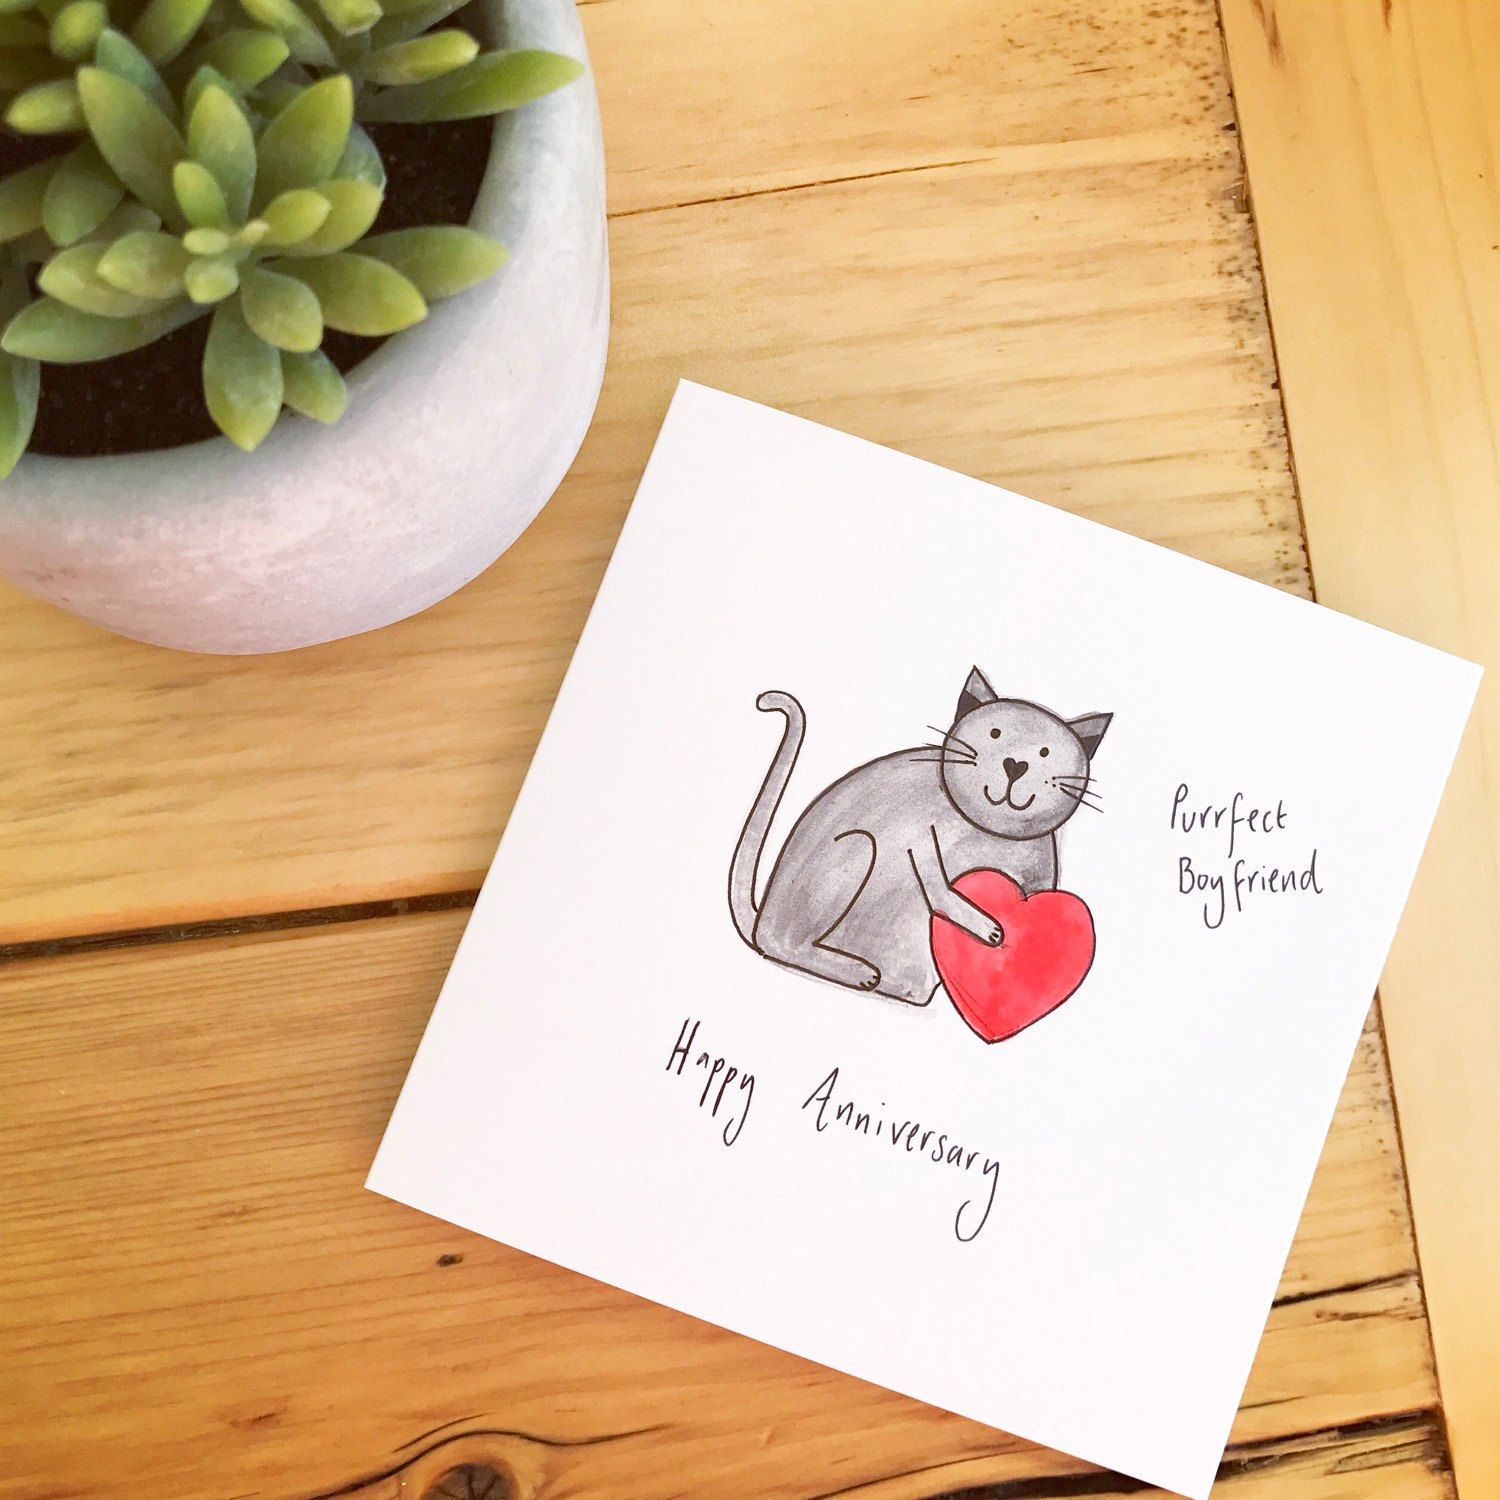 Haven't painted one of these for a while! Black cat purrfect boyfriend anniversary card  Matching girlfriend / wife ones available too